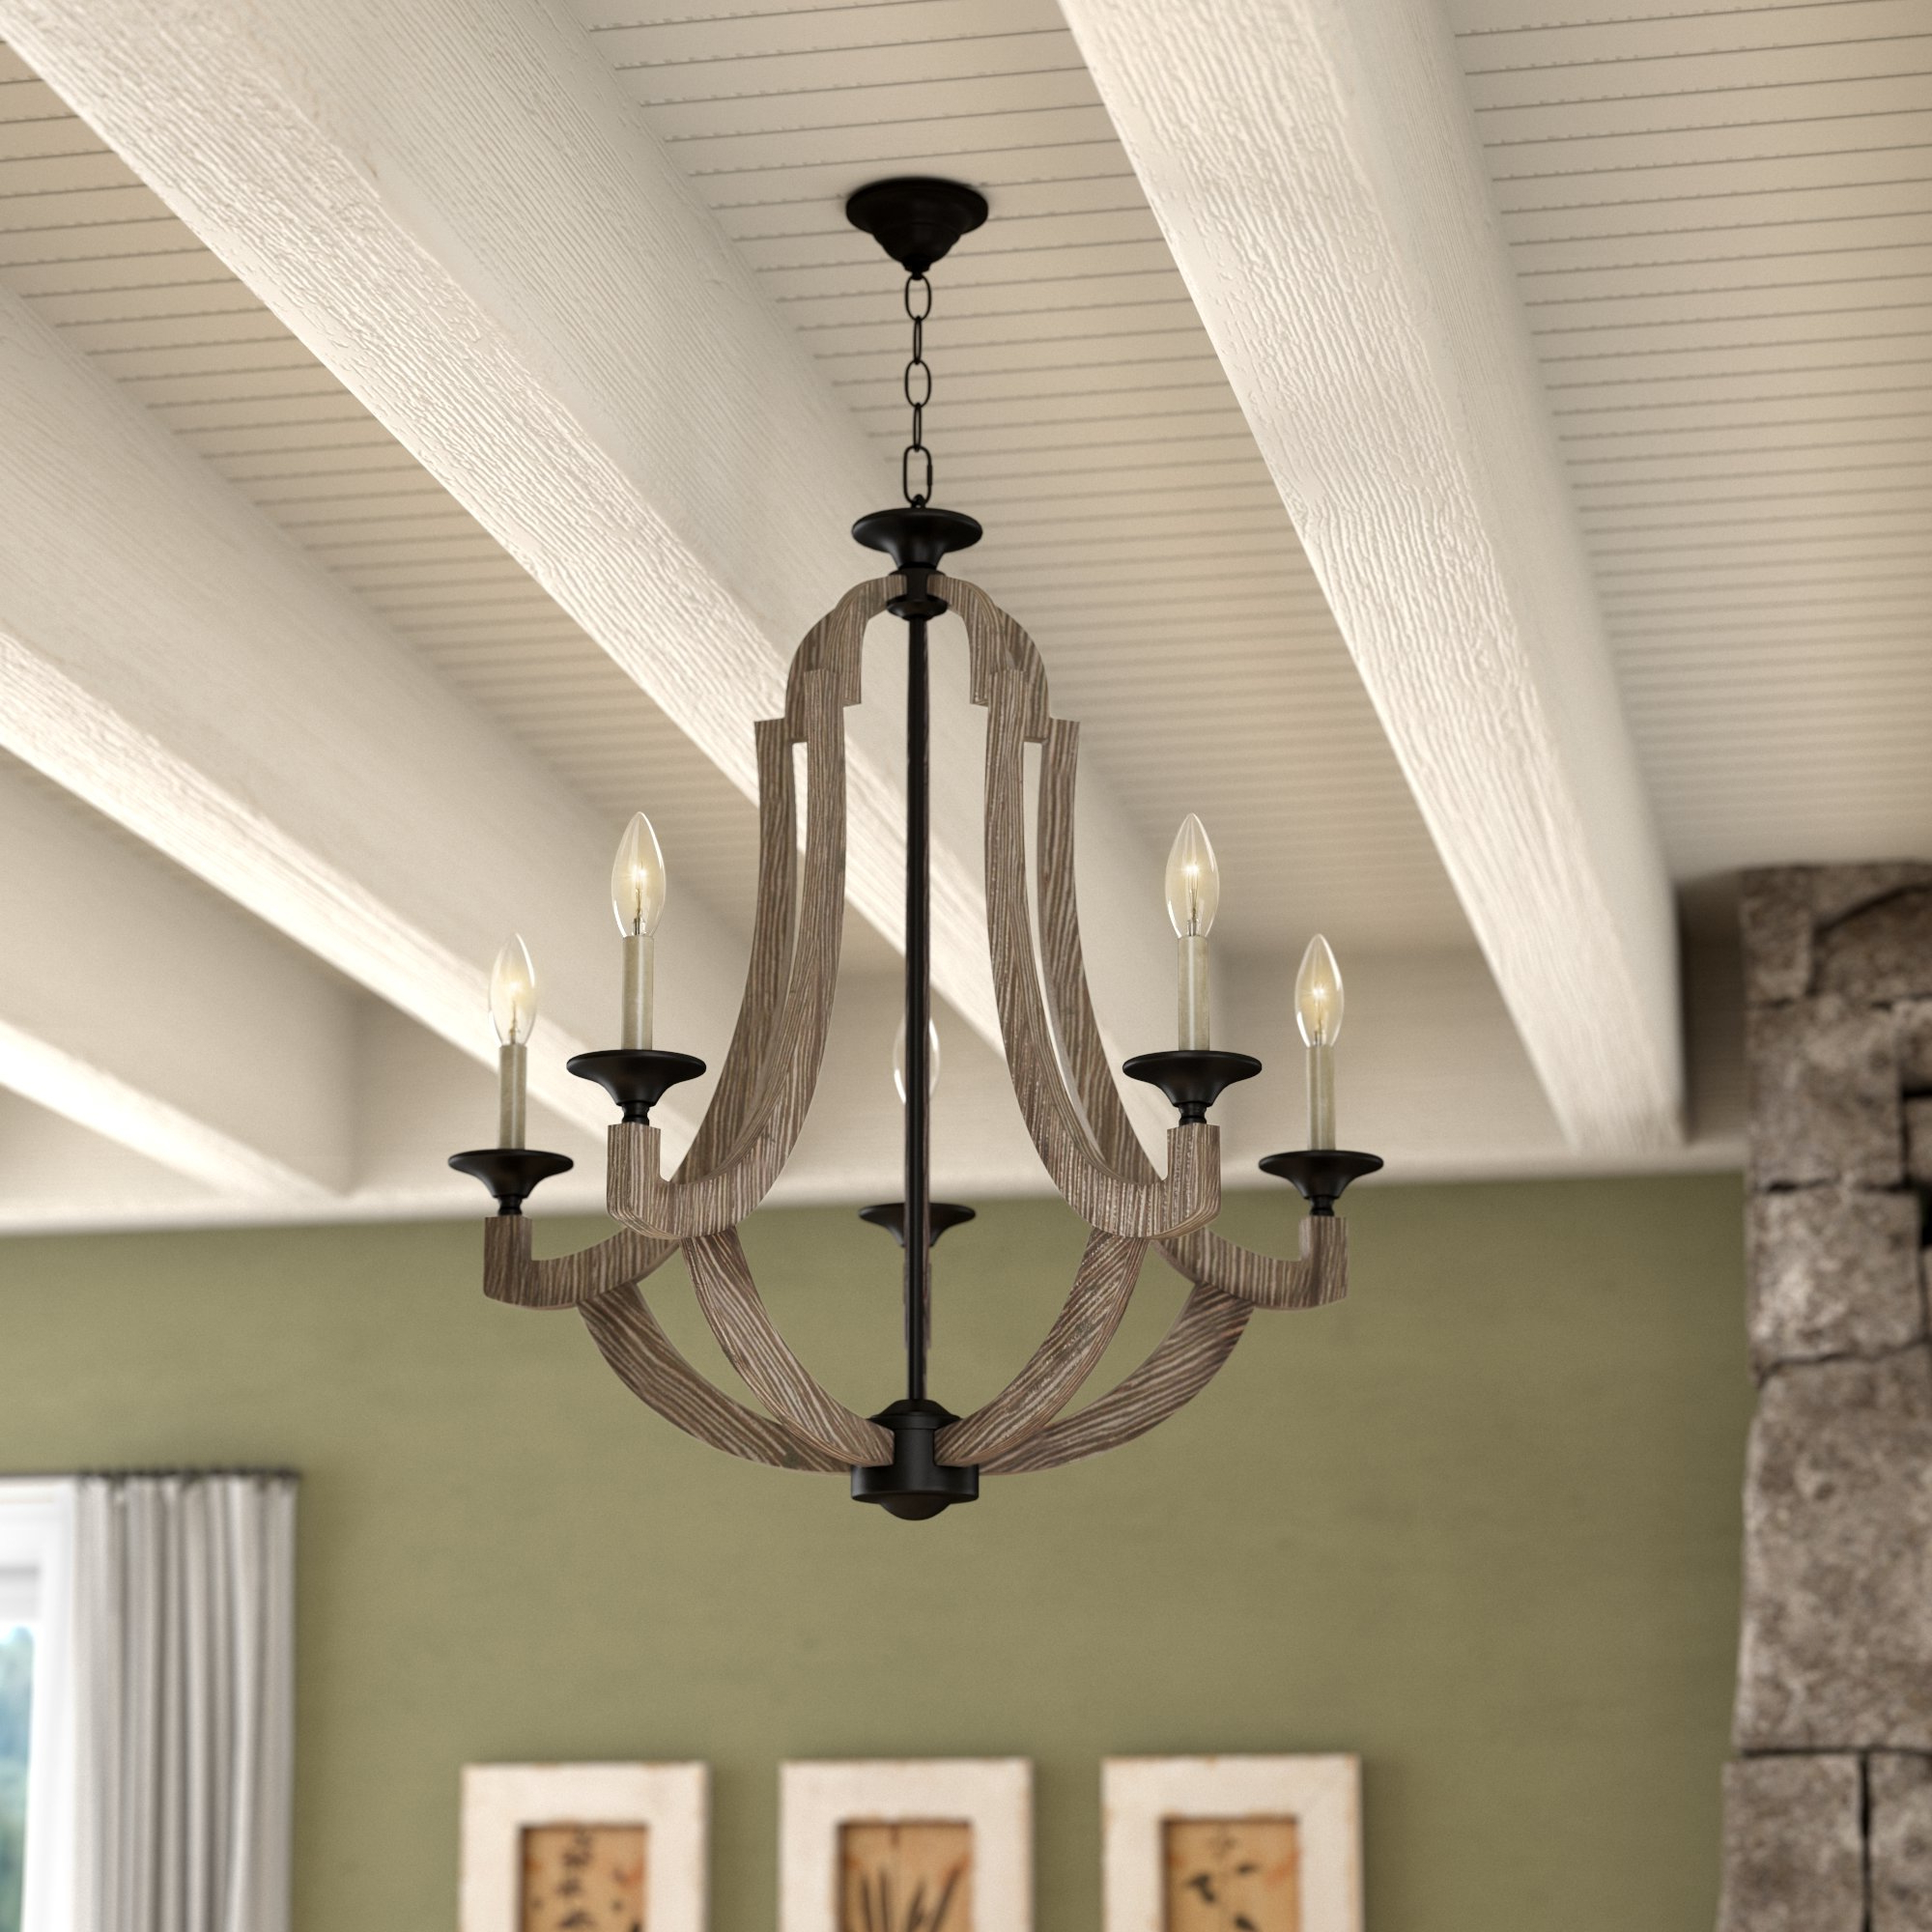 Well Liked Marcoux 5 Light Empire Chandelier With Regard To Kenna 5 Light Empire Chandeliers (View 20 of 20)